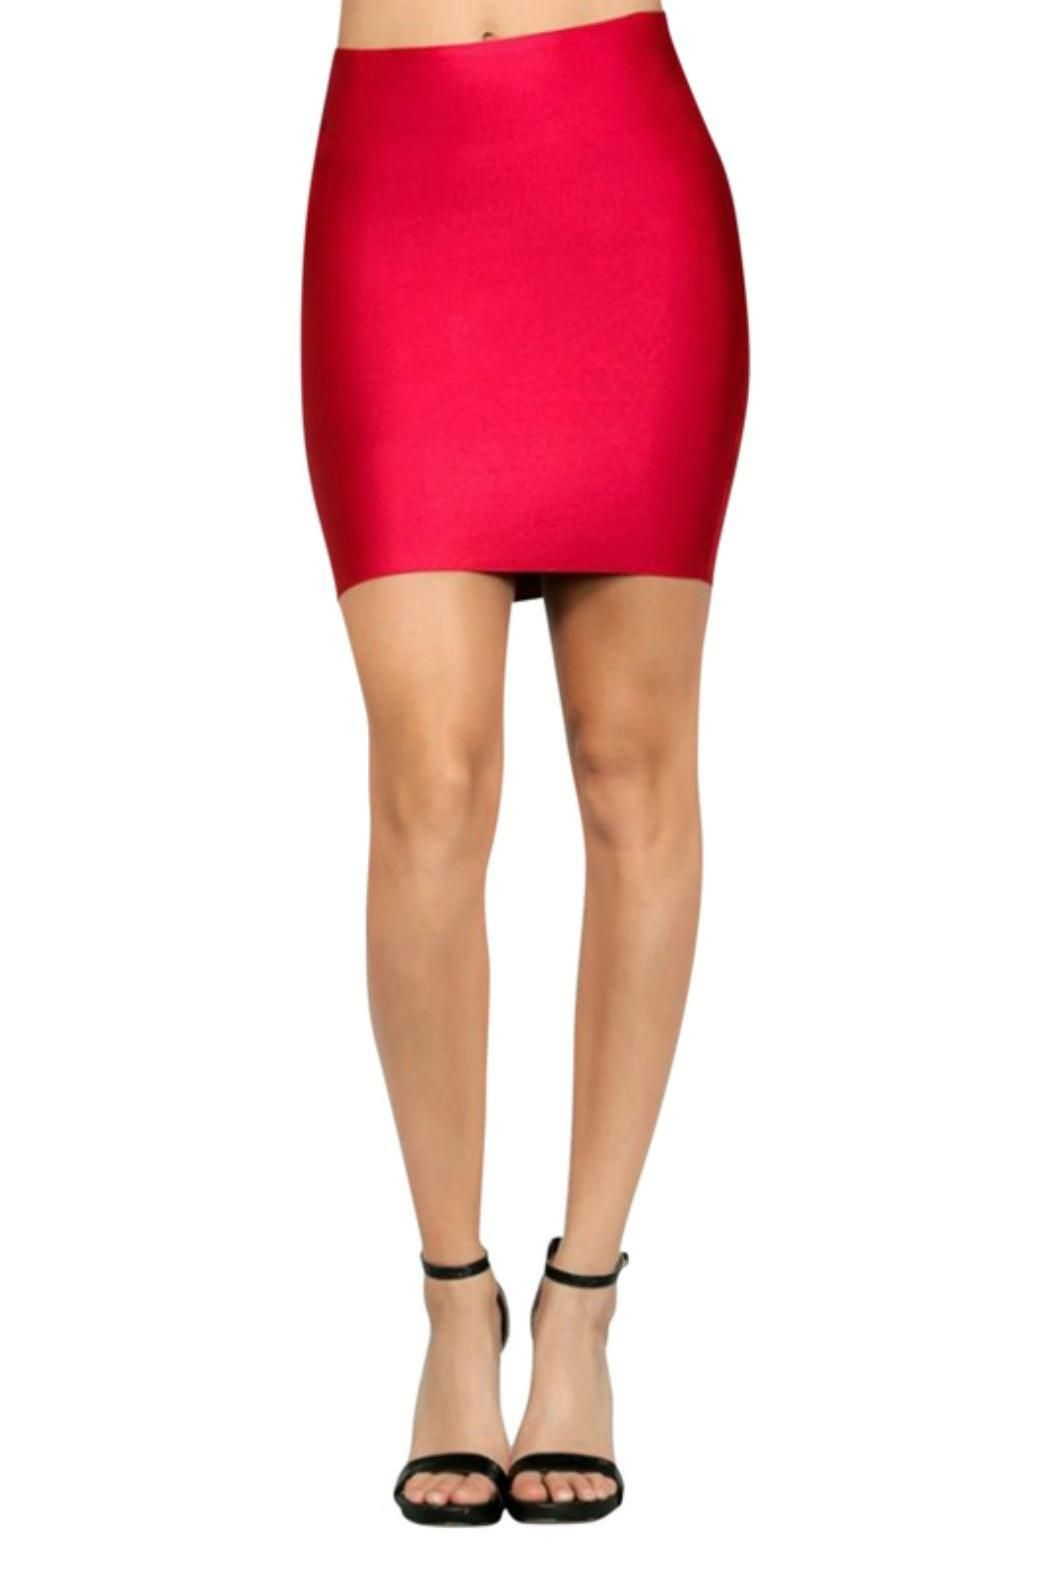 Ruby bandage bodycon mini pencil skirt. Features thick luxe fabric with a sateen finish. Rock this sexy mini with a strappy black bodysuit and black heels!   Ruby Bandage Mini Skirt by BRANDED. Clothing - Skirts San Diego, California